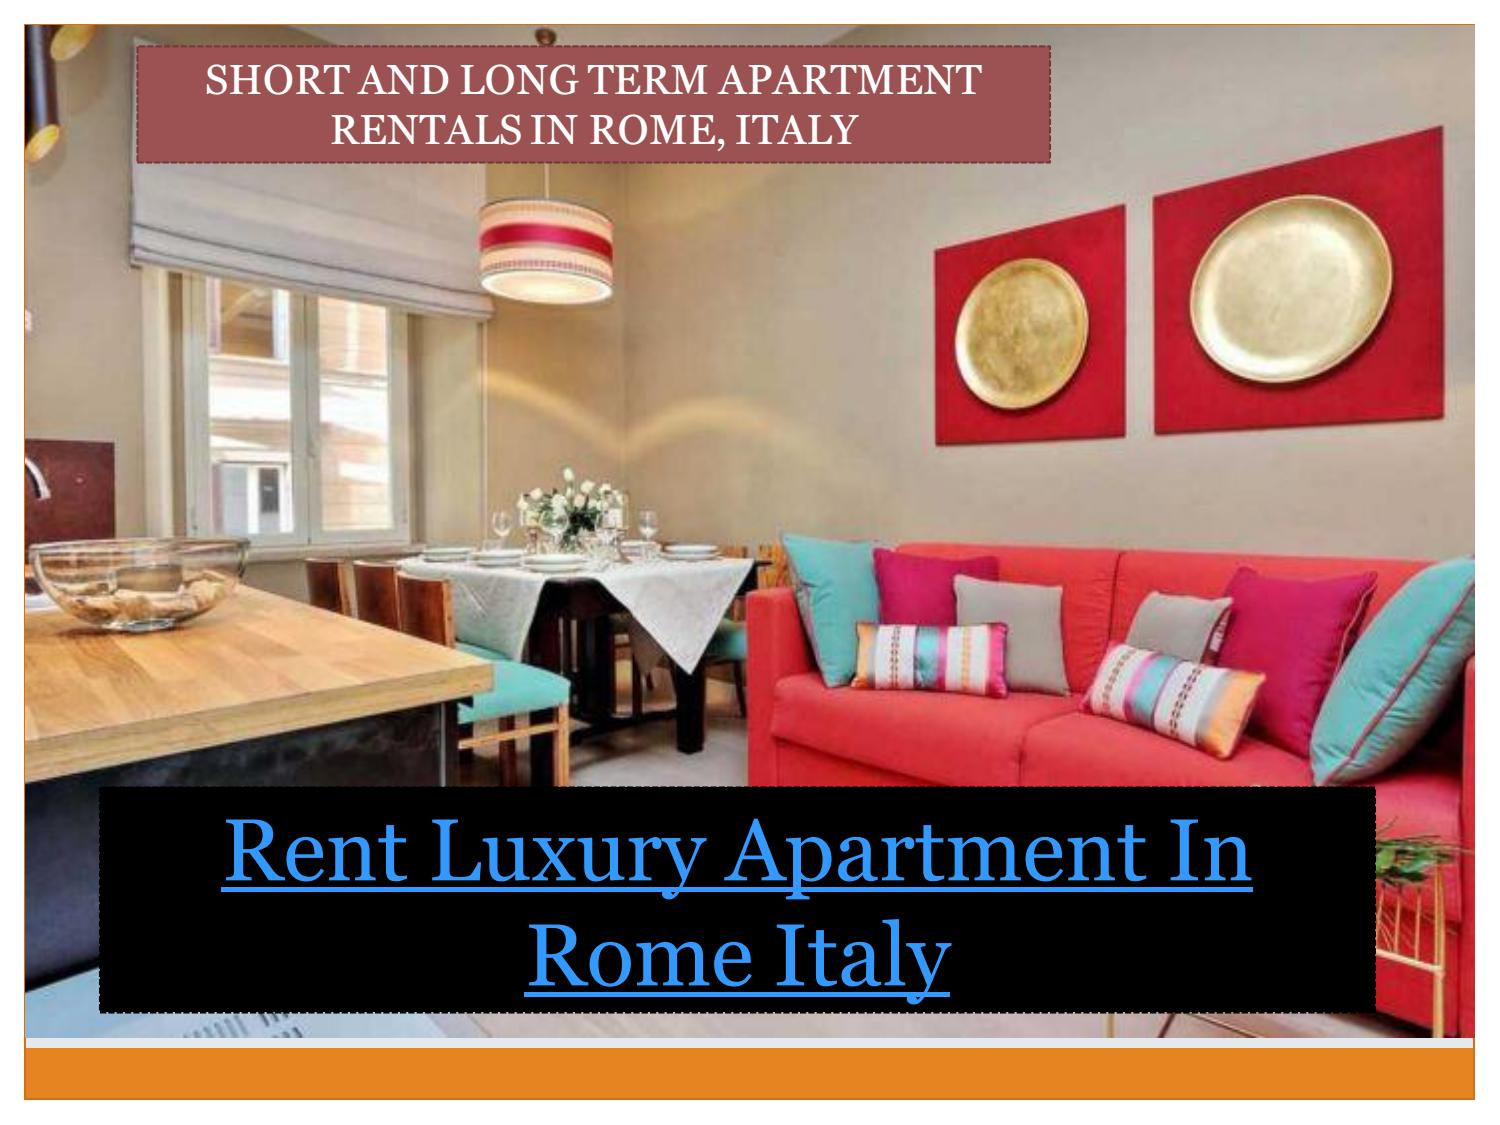 Rent Luxury Apartment In Rome Italy By Rentals Issuu